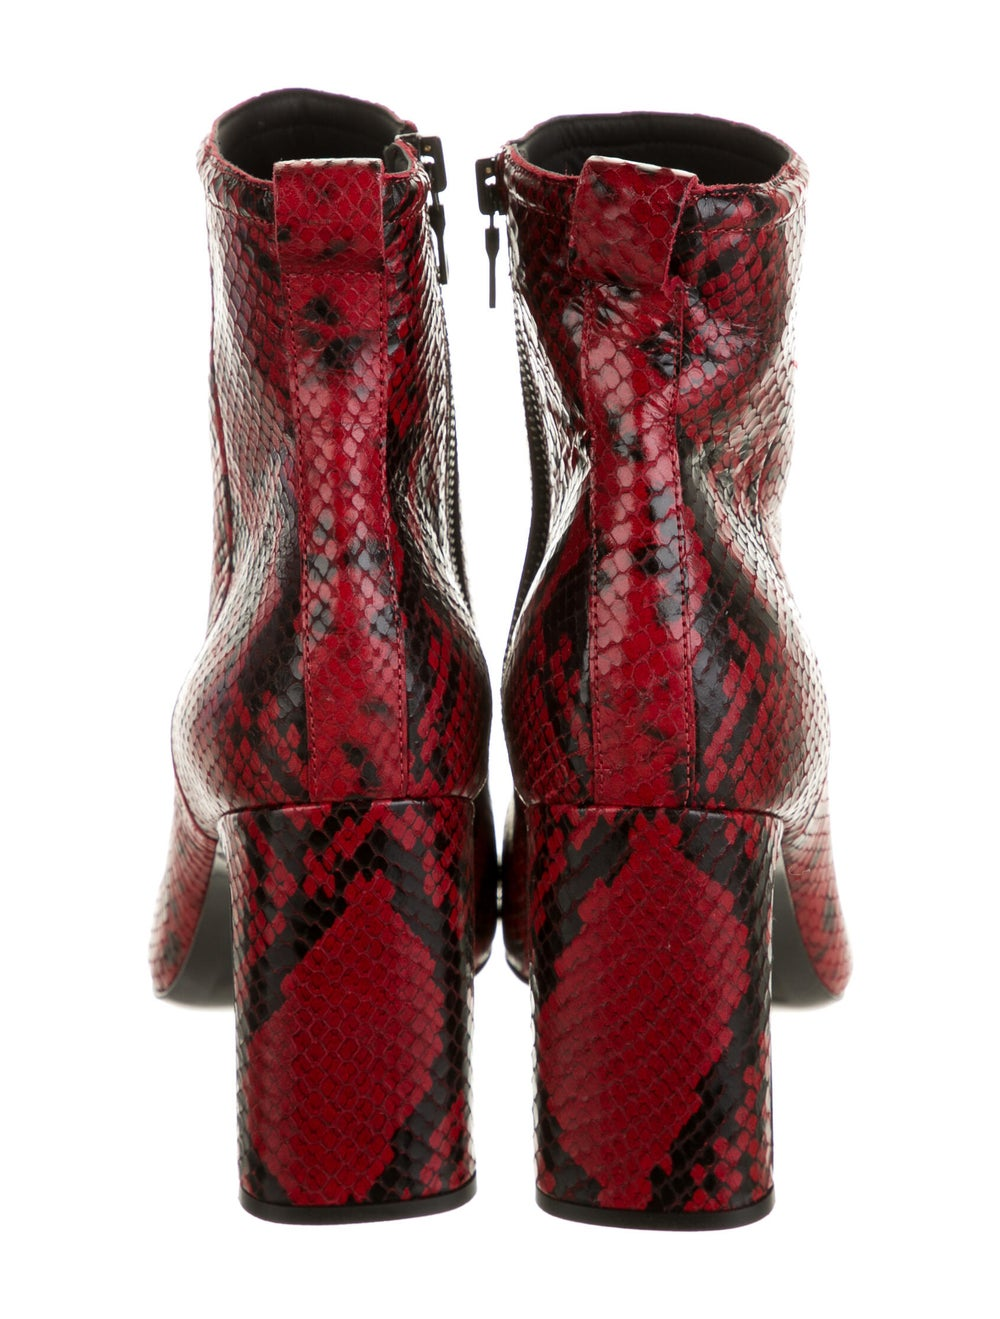 Rag & Bone Embossed Leather Boots Red - image 4